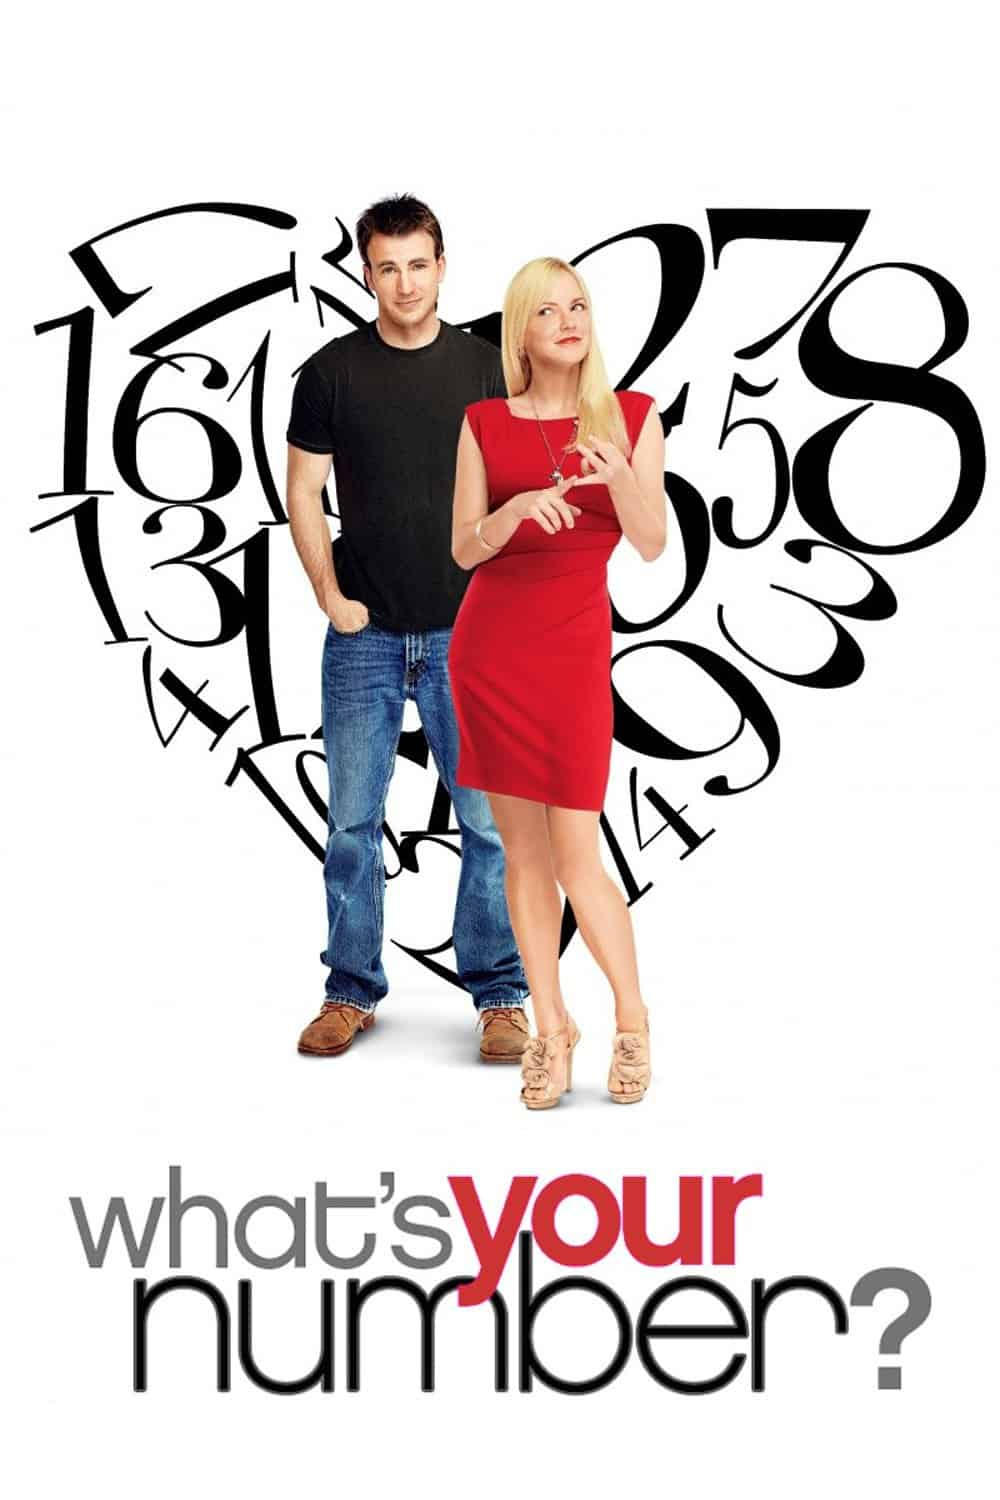 What's Your Number?, 2011